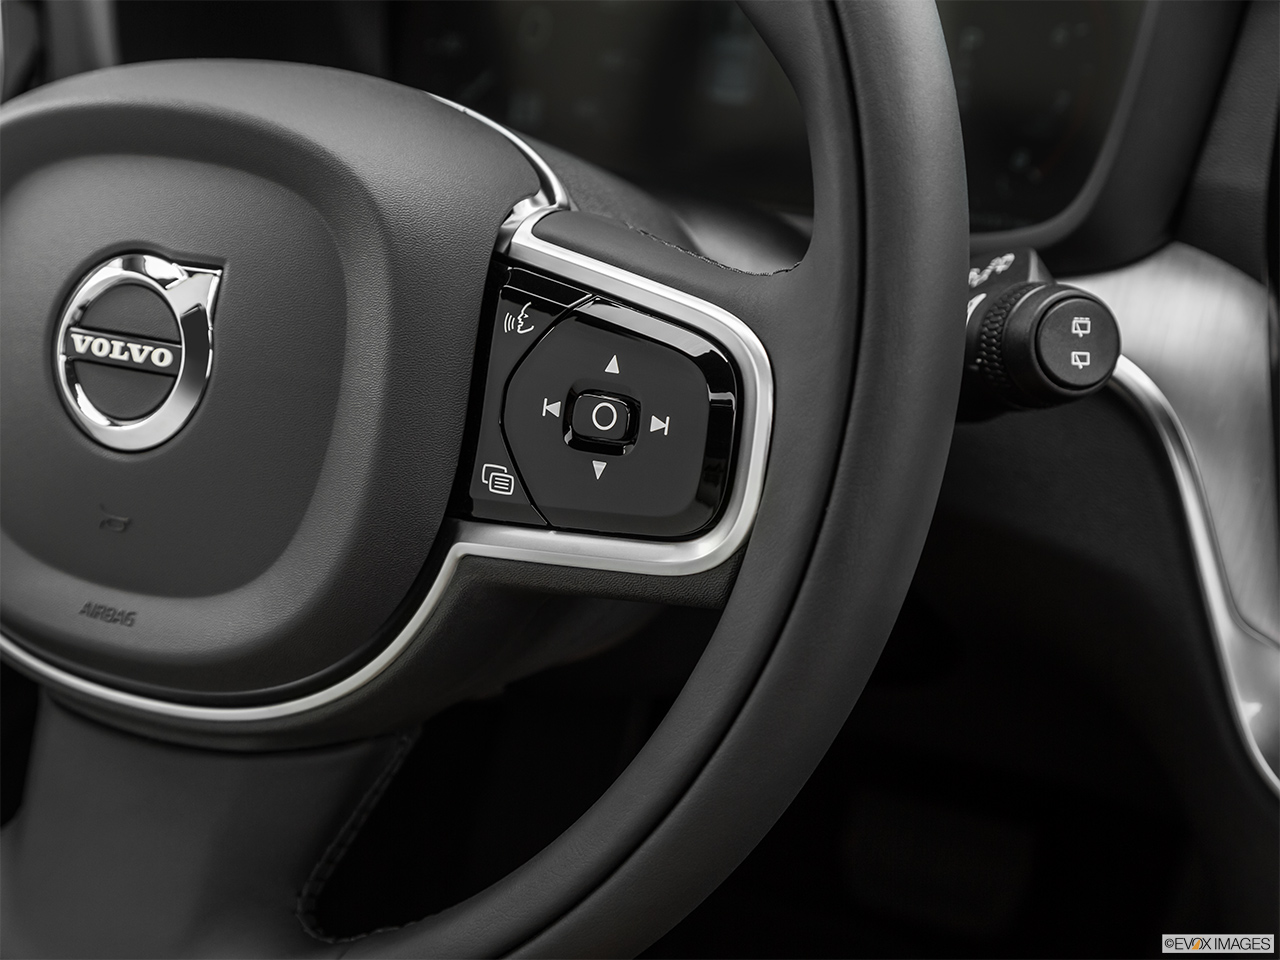 2020 Volvo V60 Cross Country T5 AWD Steering Wheel Controls (Right Side)